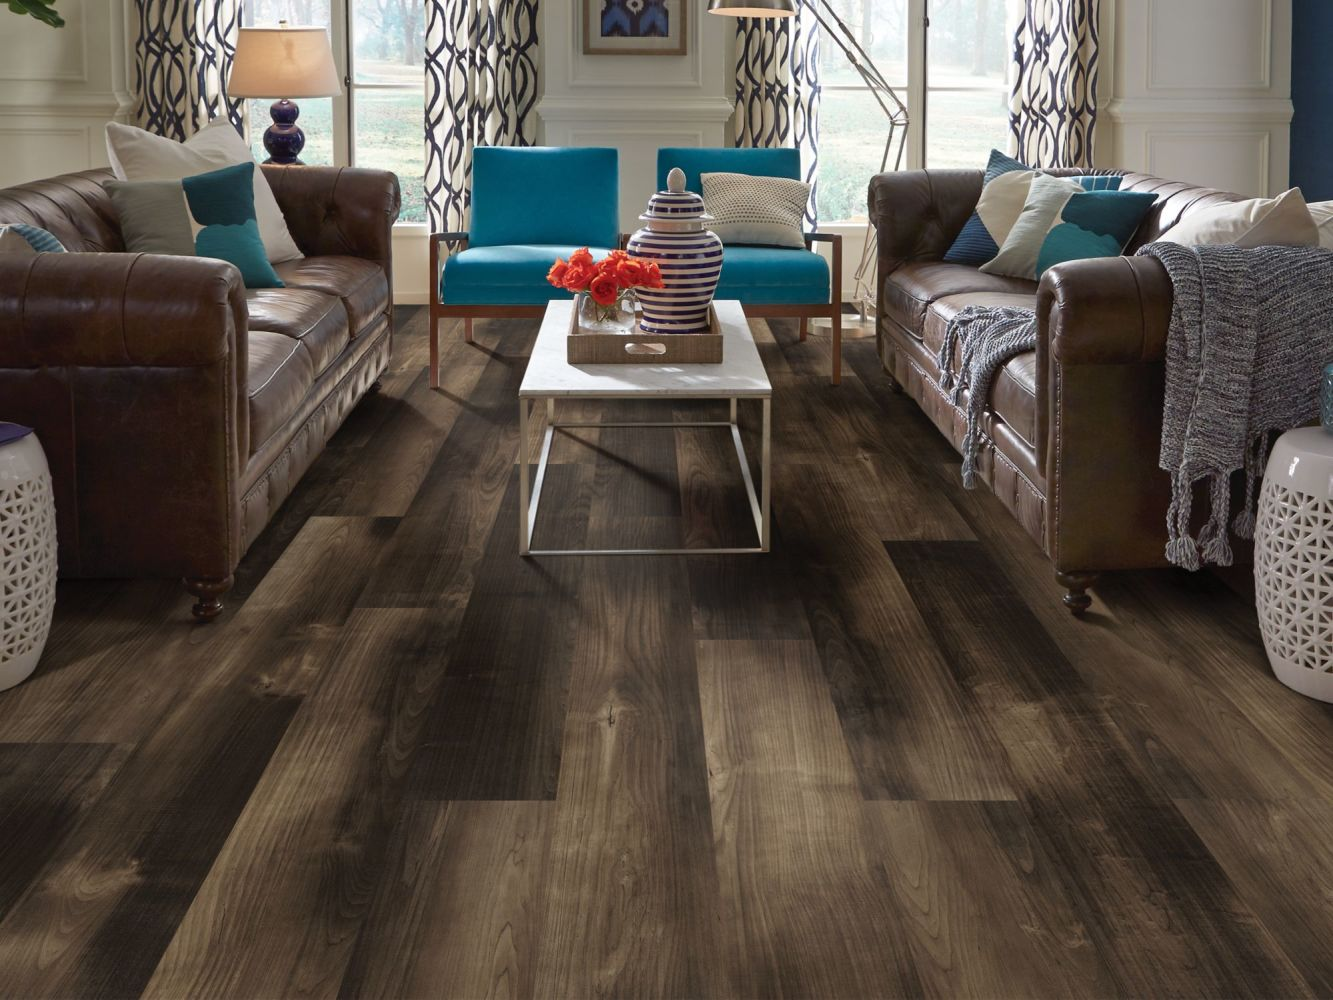 Shaw Floors Resilient Property Solutions Patriot+ Milled Mill Creek Maple 07060_VE308